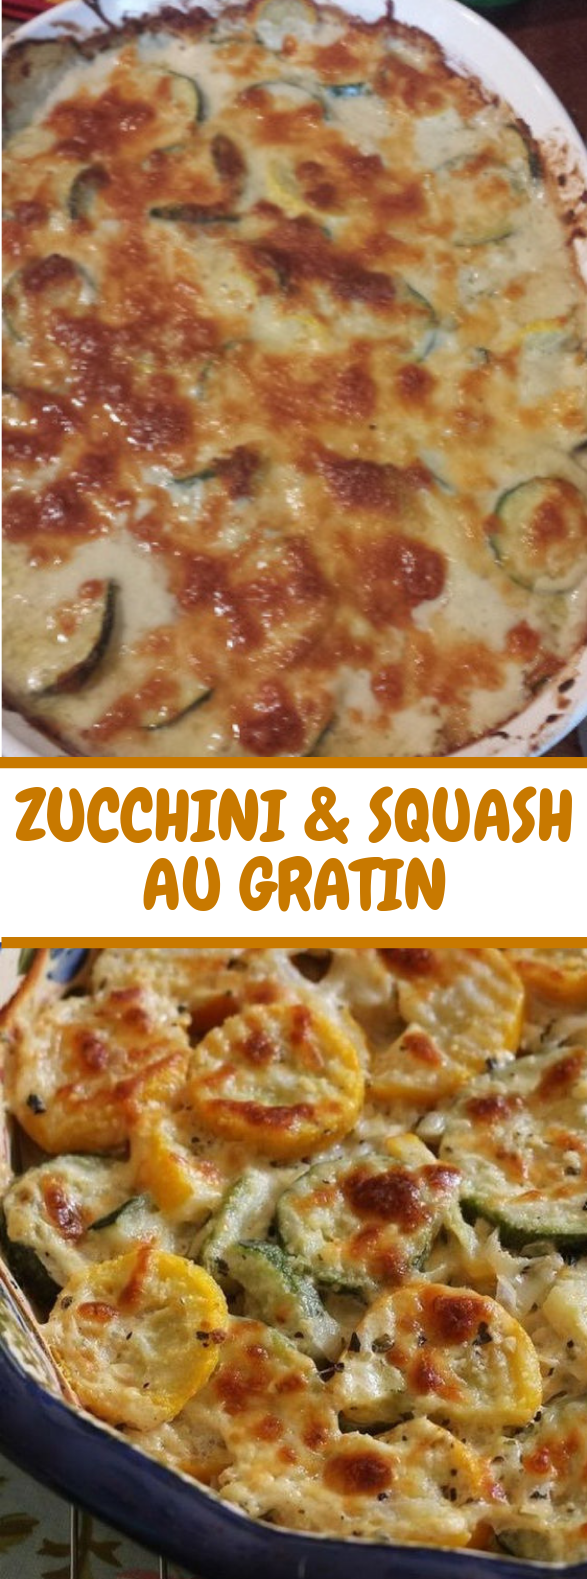 Zucchini and Squash Au Gratin #lowcarb #vegetarian